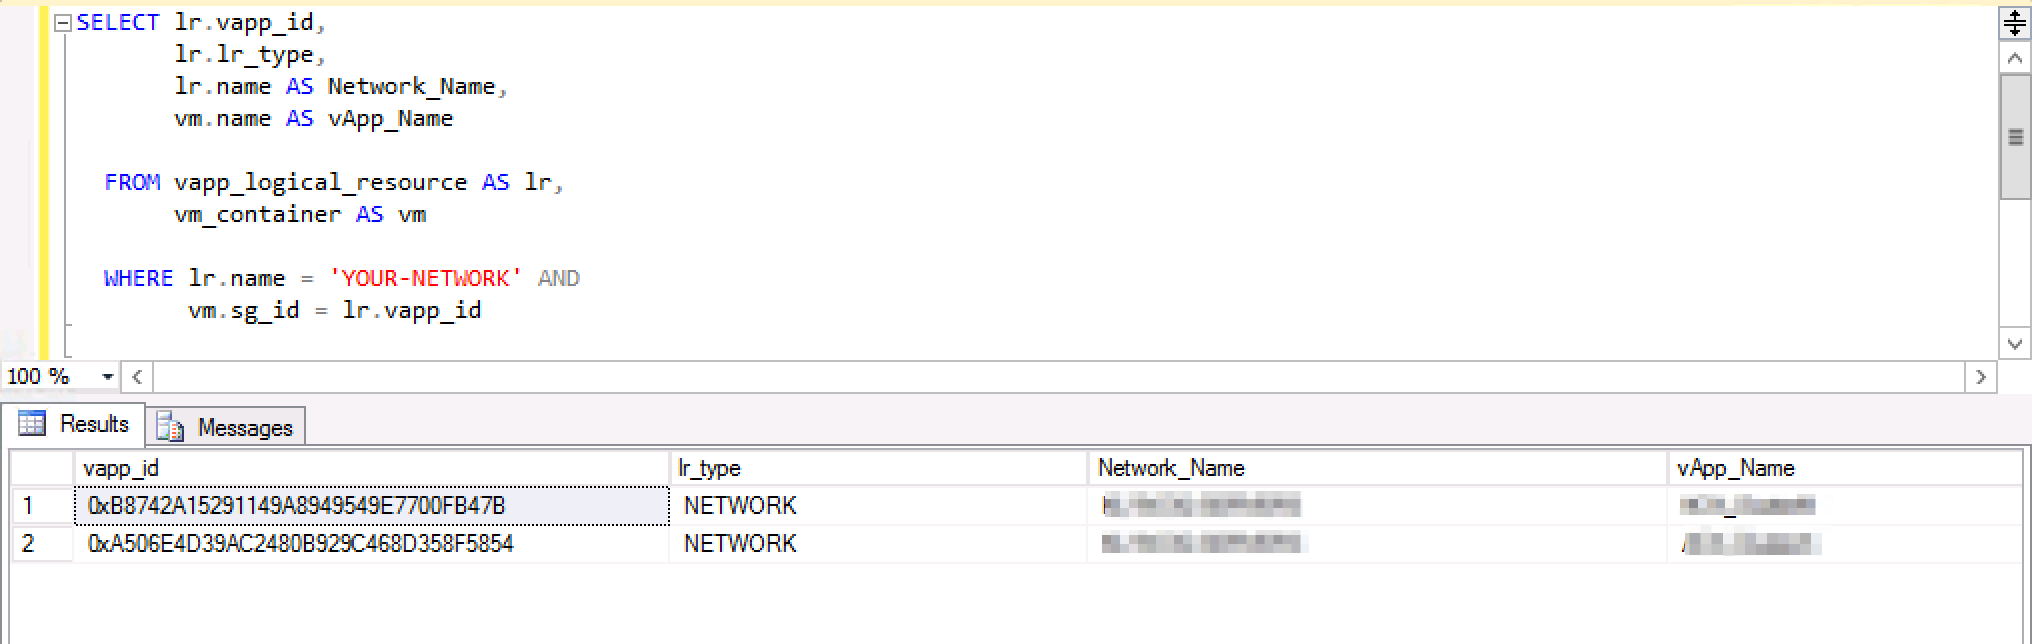 vCloud Director: Removing Network from a vApp without shutting it down